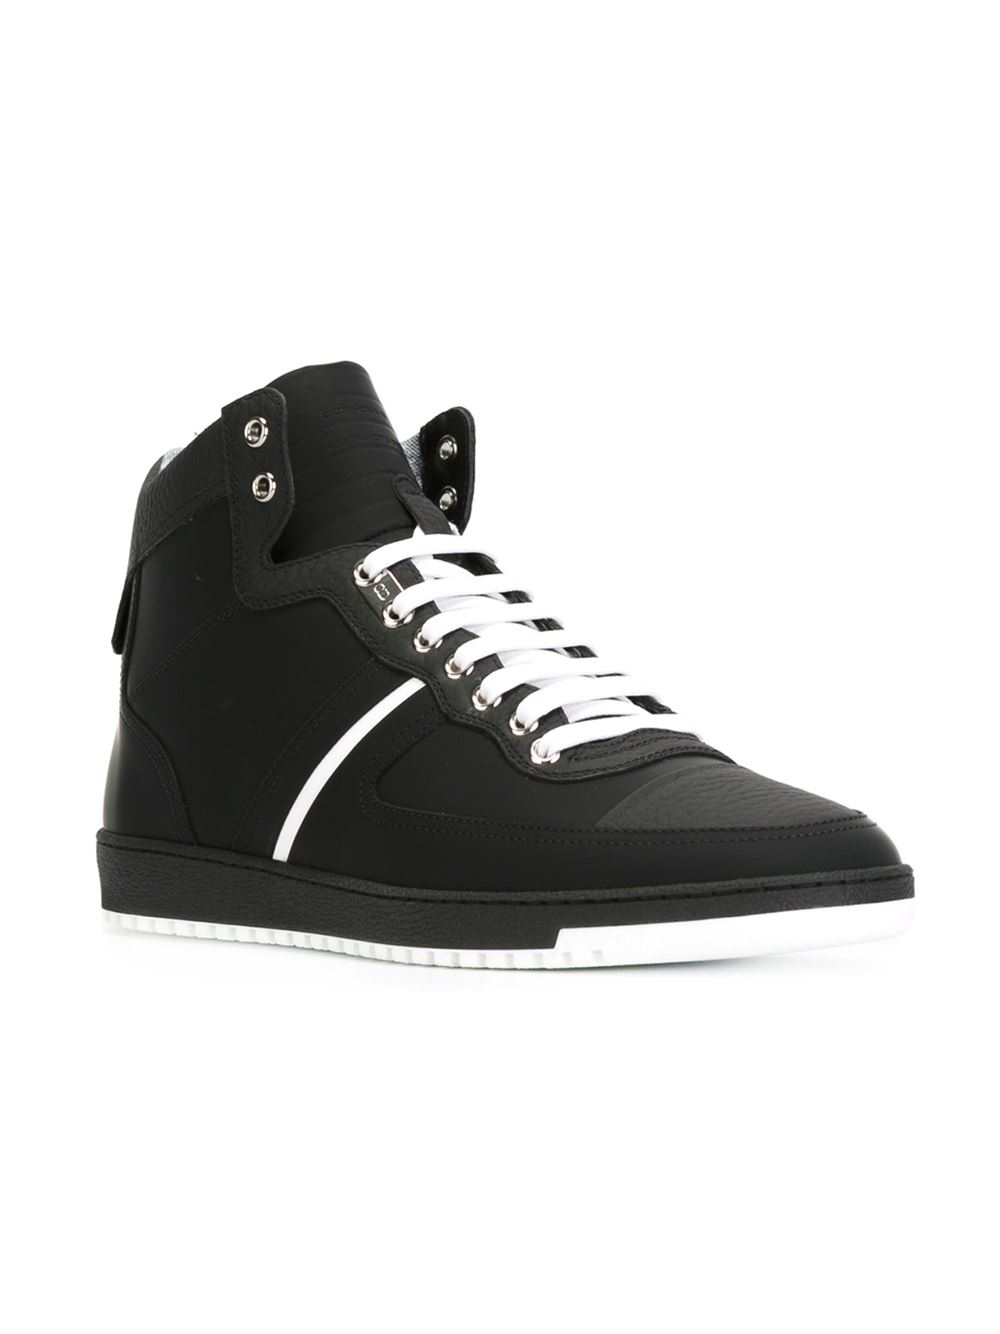 Lyst - Dior Homme Contrasting-Stripe High-Top Sneakers in Black for Men a21a5144b64